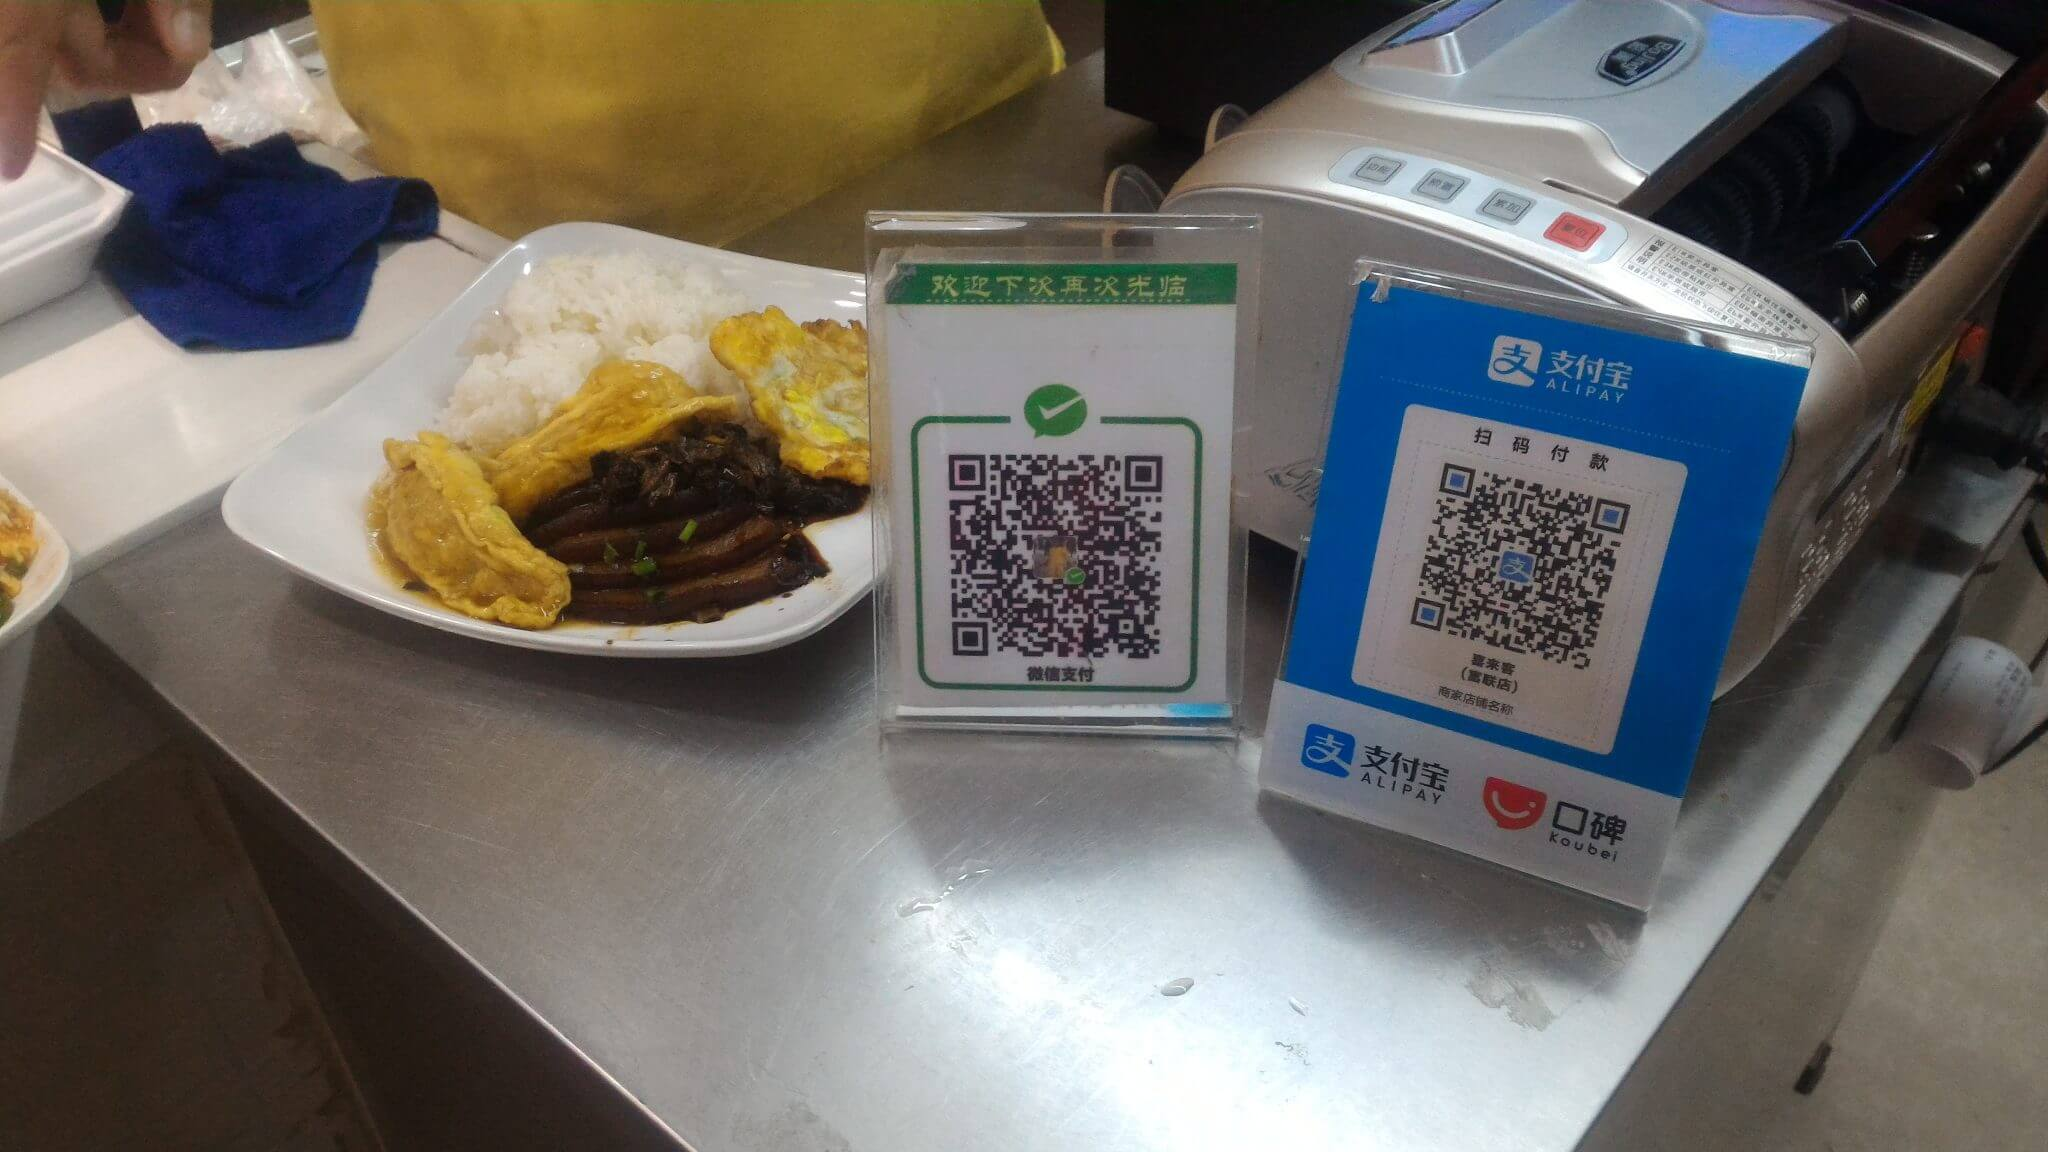 QR codes for online payment used in China